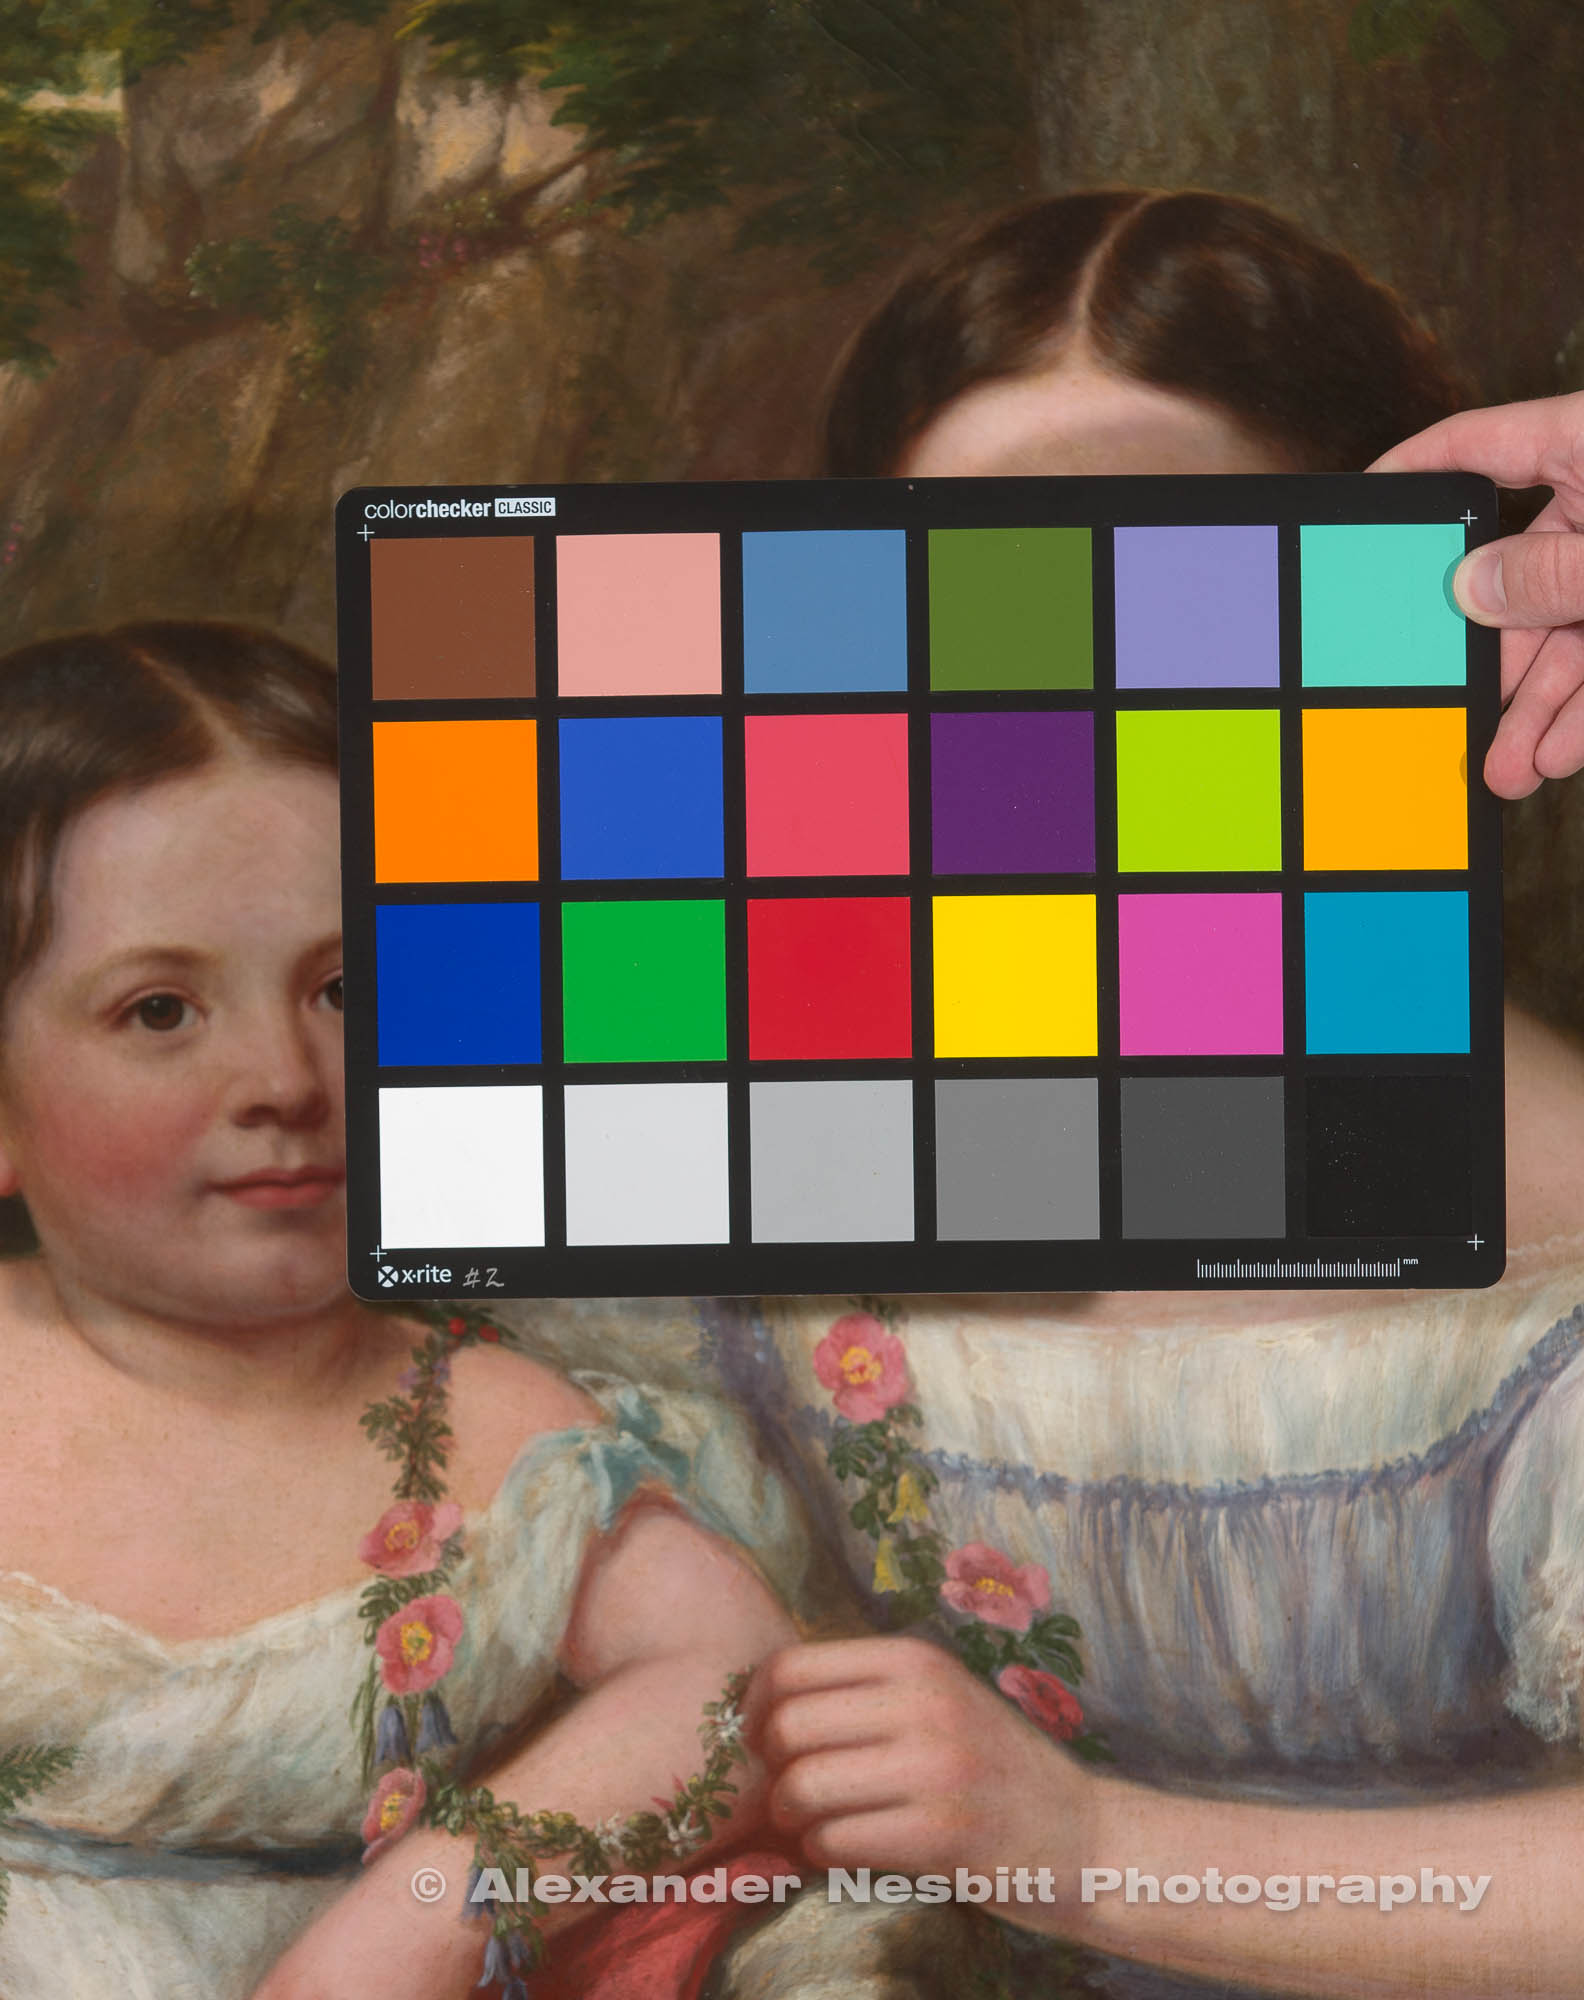 Art reproduction photography with the ColorChecker - our art reproduction service